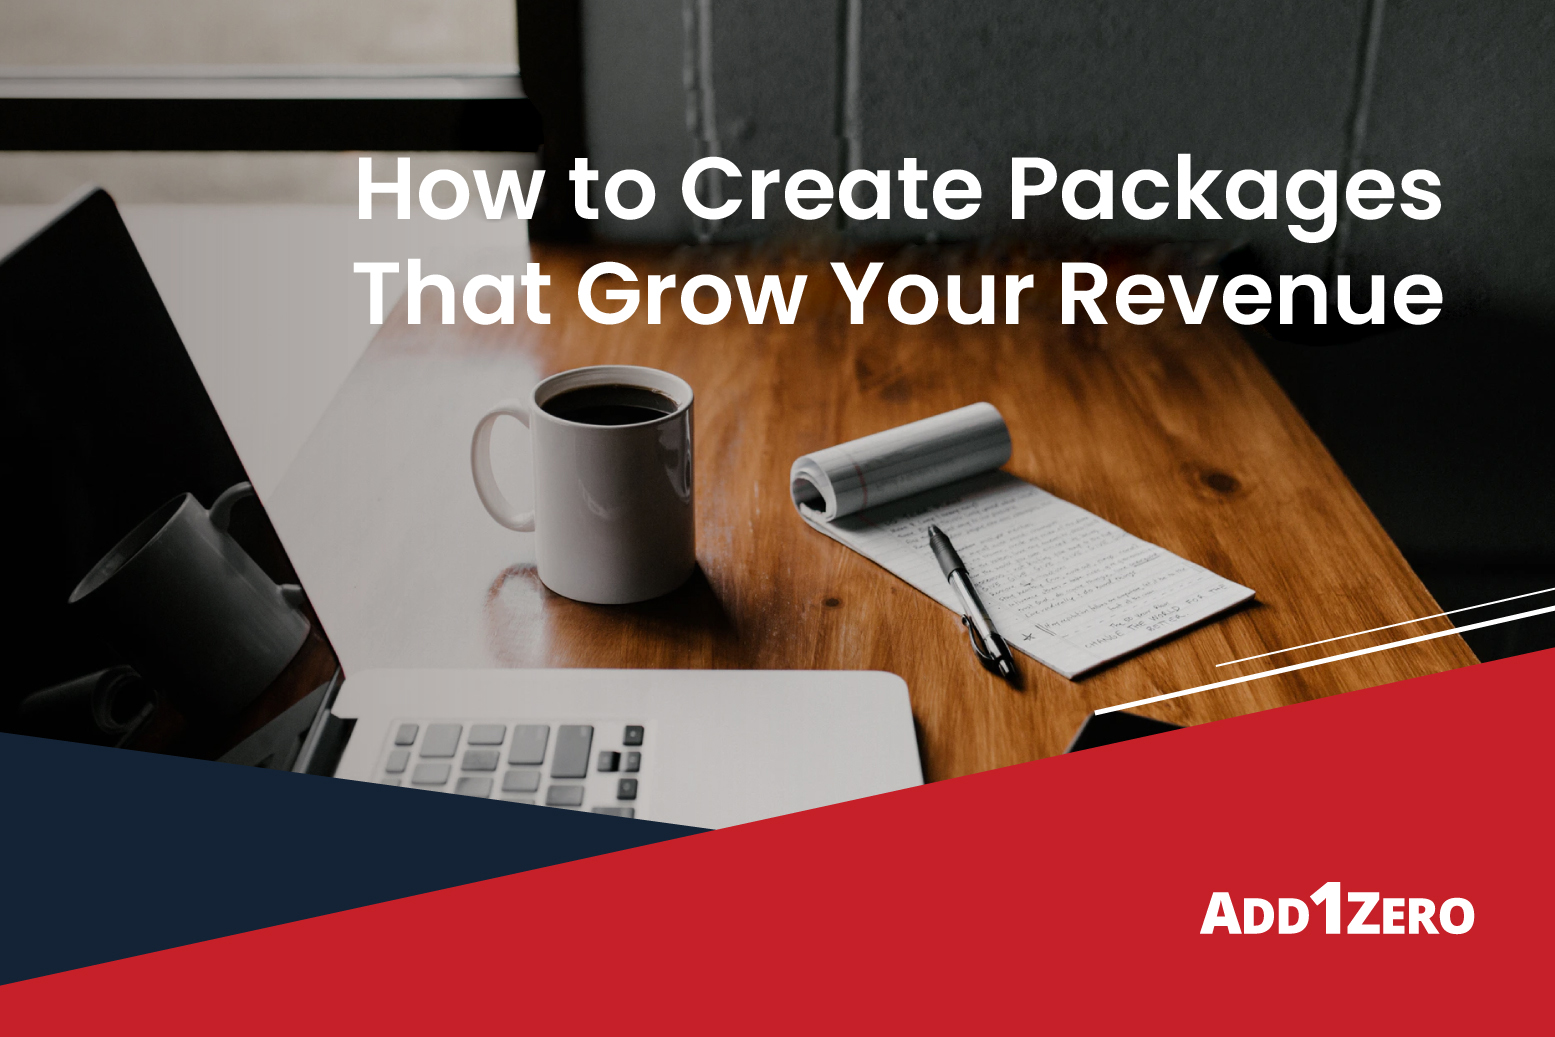 How to Create Packages That Grow Your Revenue